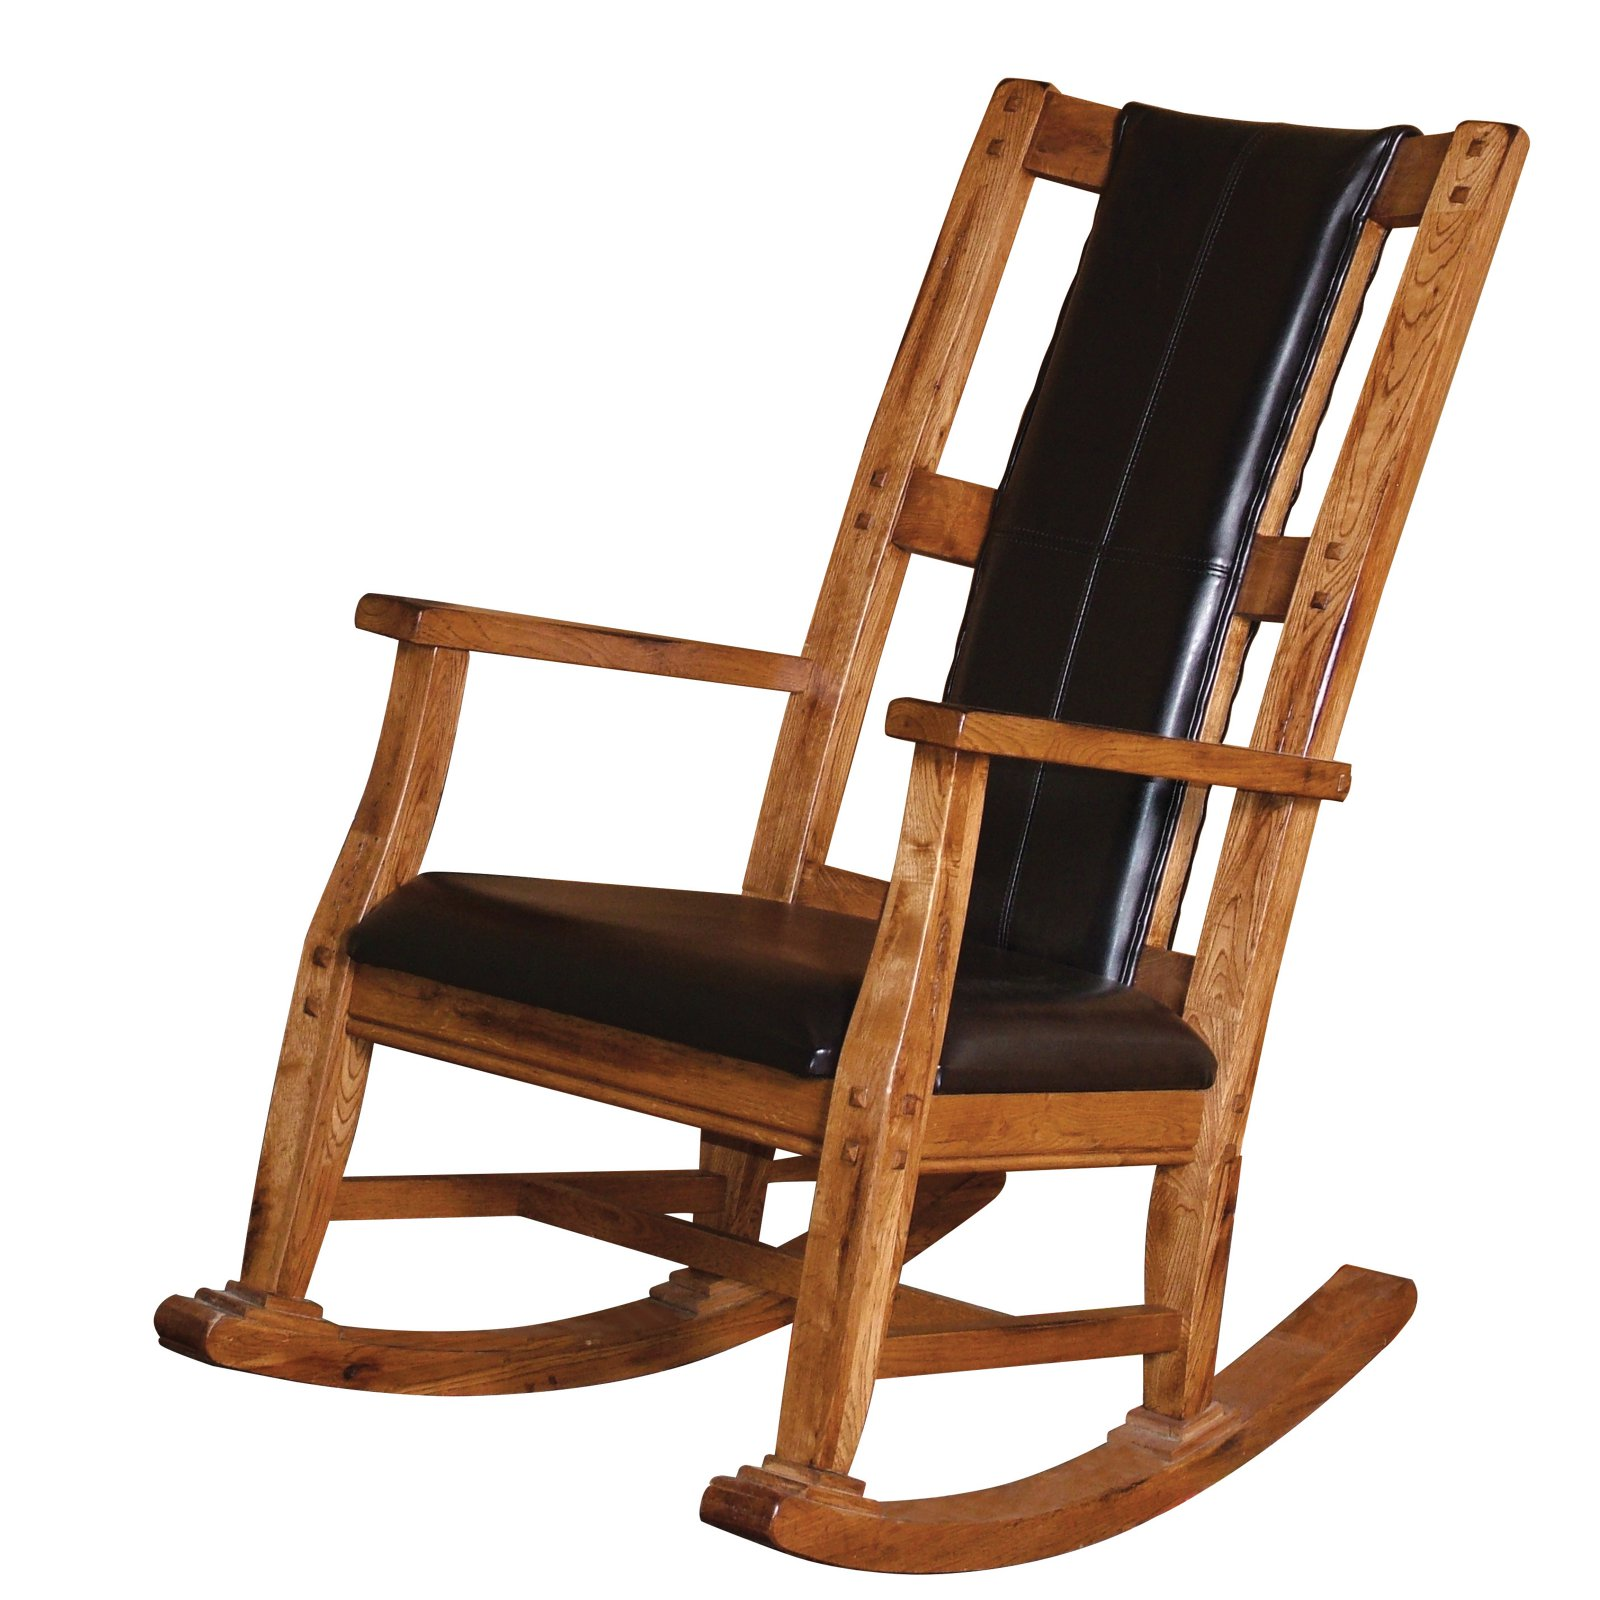 Sunny Designs Sedona Indoor Rocking Chair by Sunny Designs